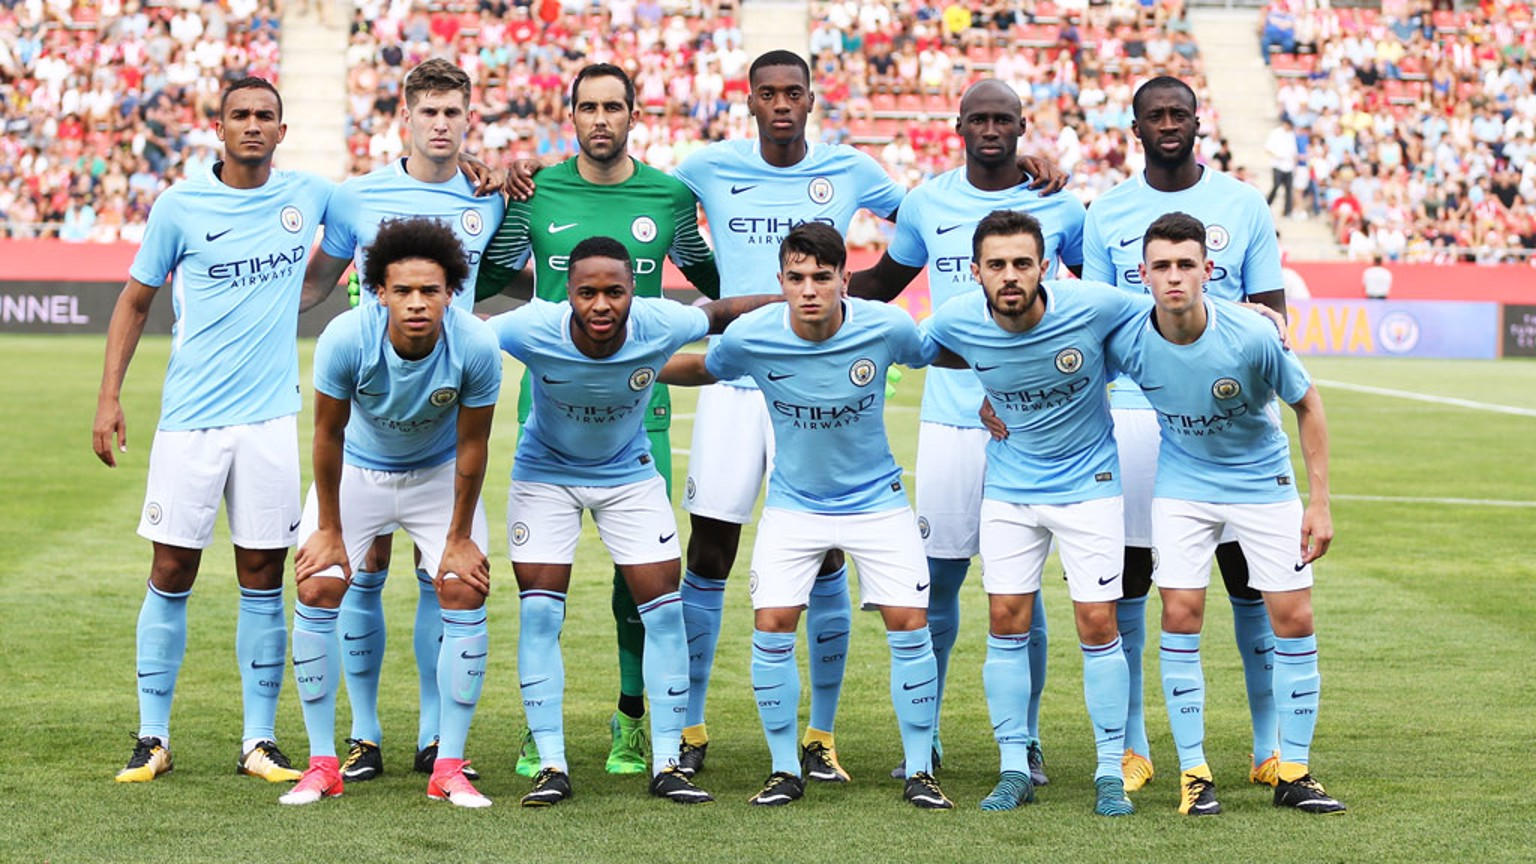 FRIENDLY ACTION: City played Girona in Catalonia on Tuesday